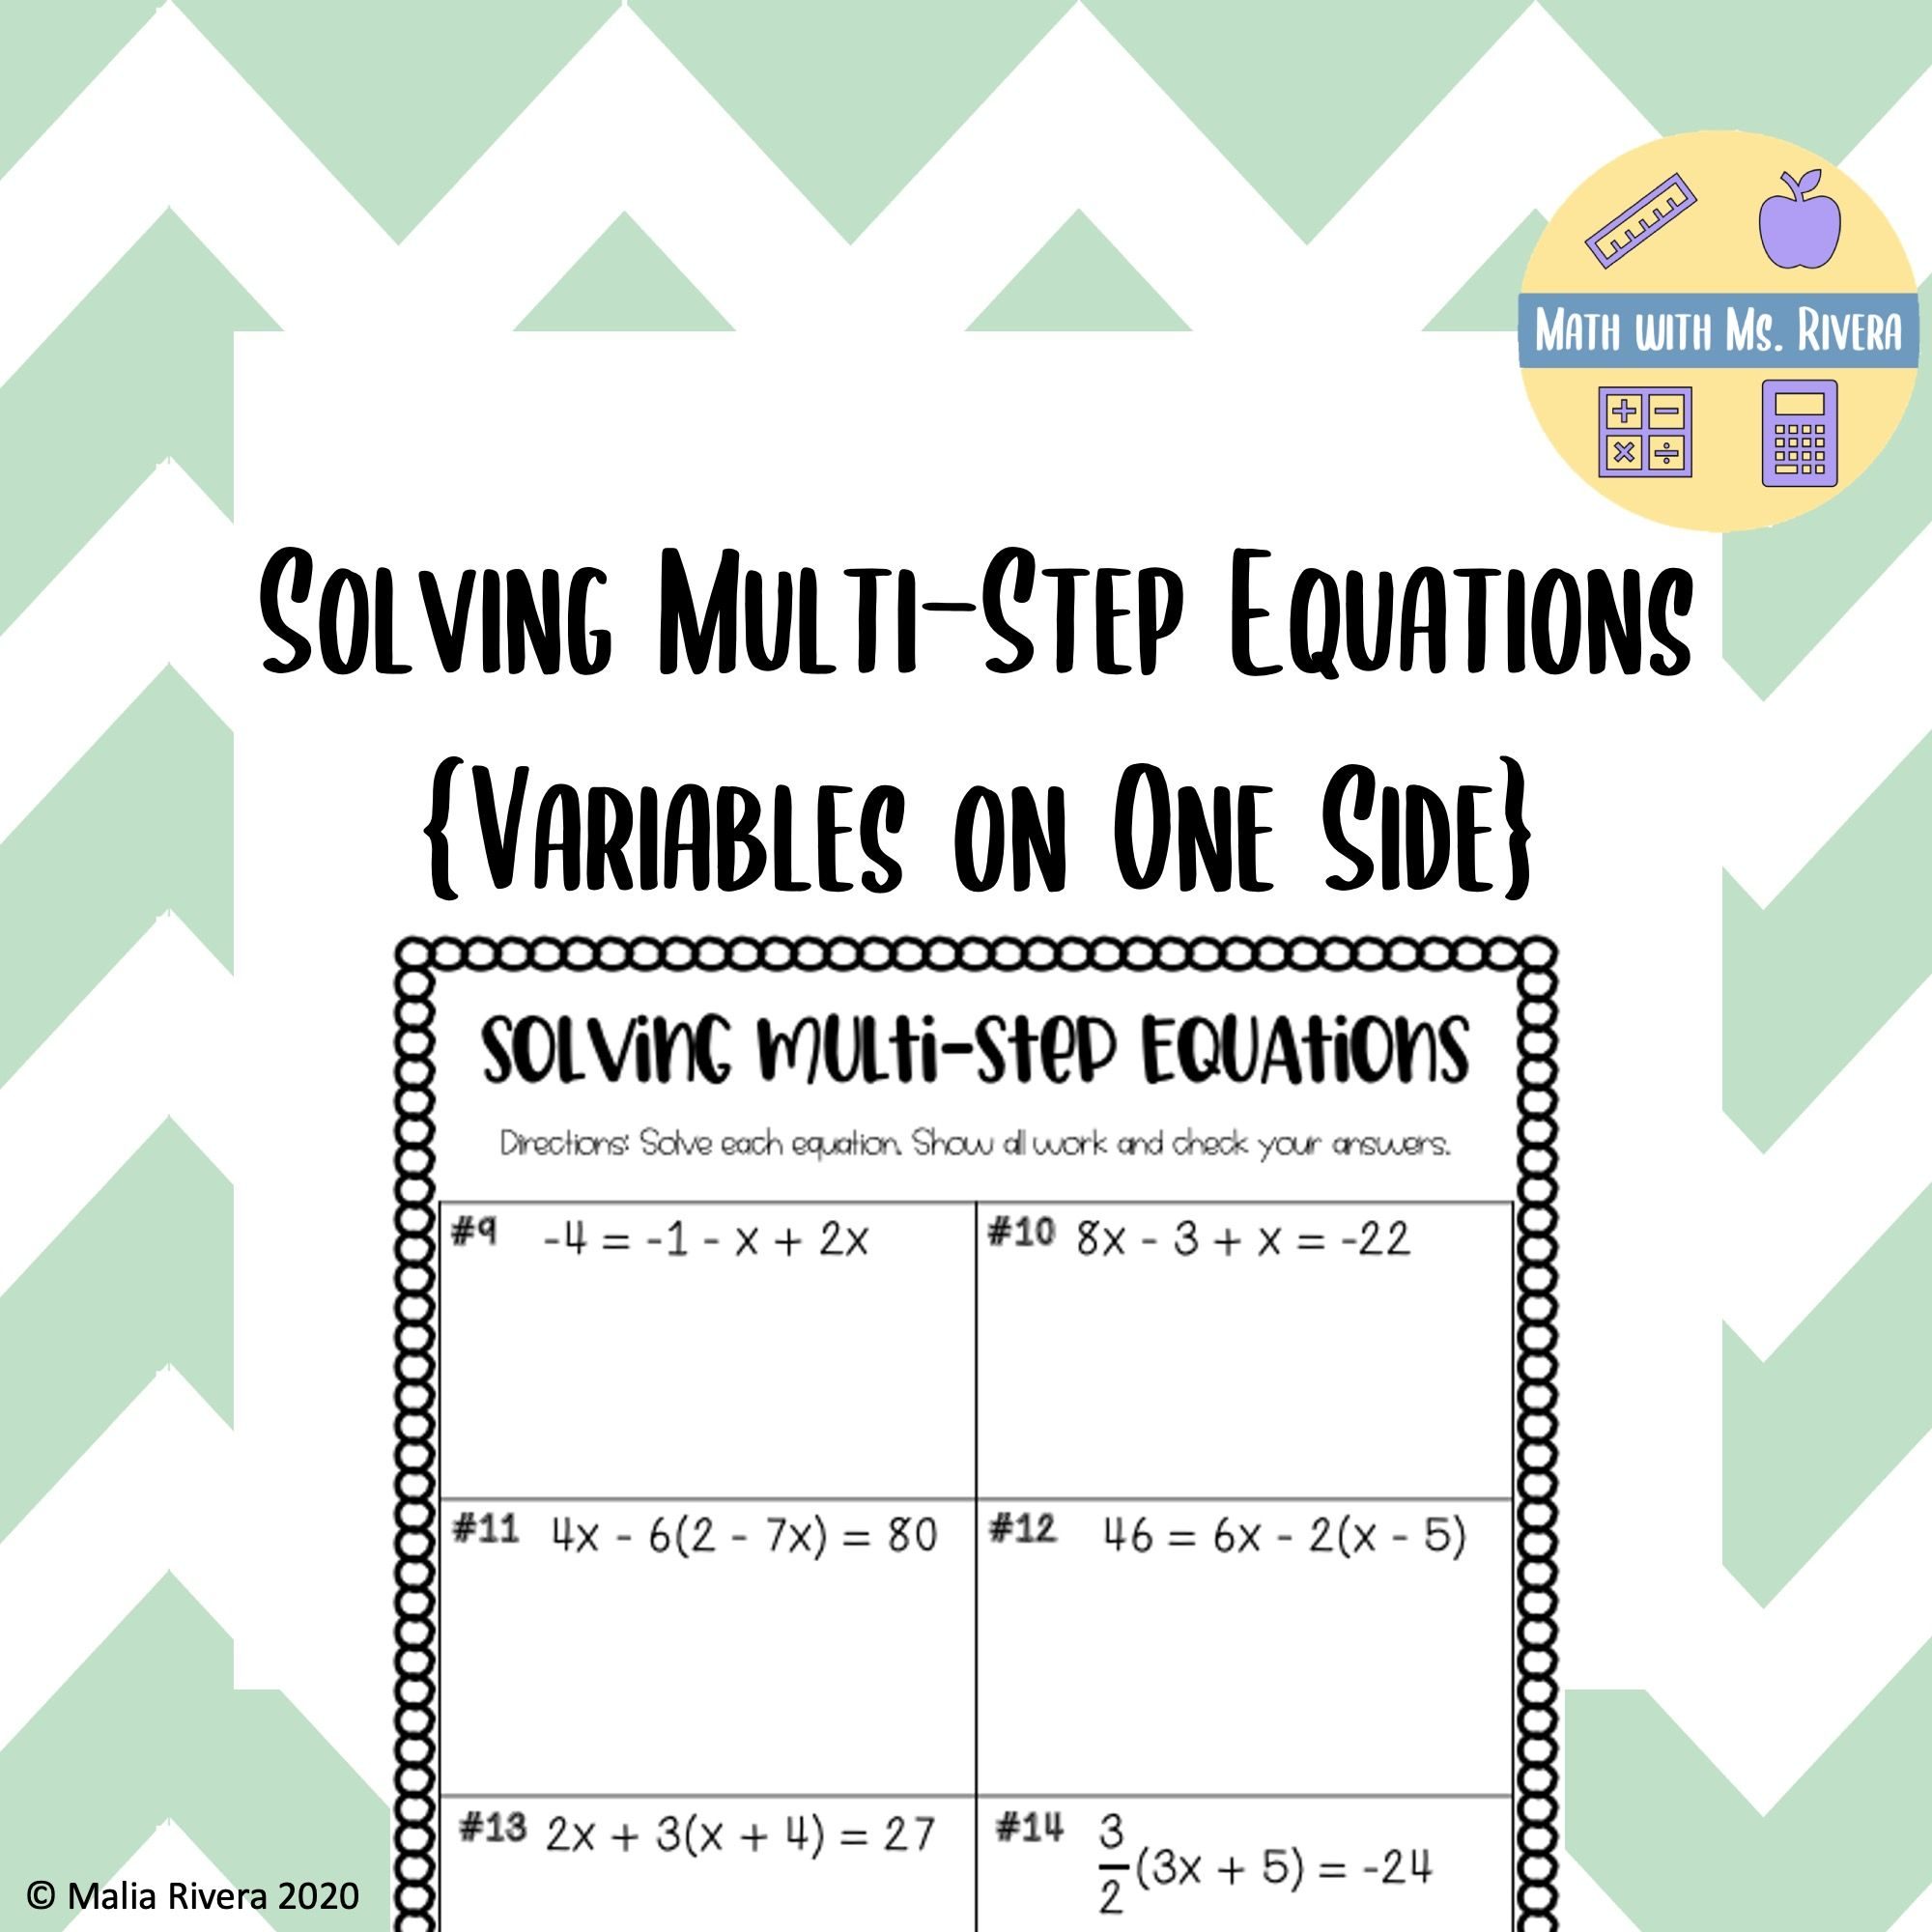 hight resolution of Solving Multi-Step Equations Worksheet   Multi step equations worksheets